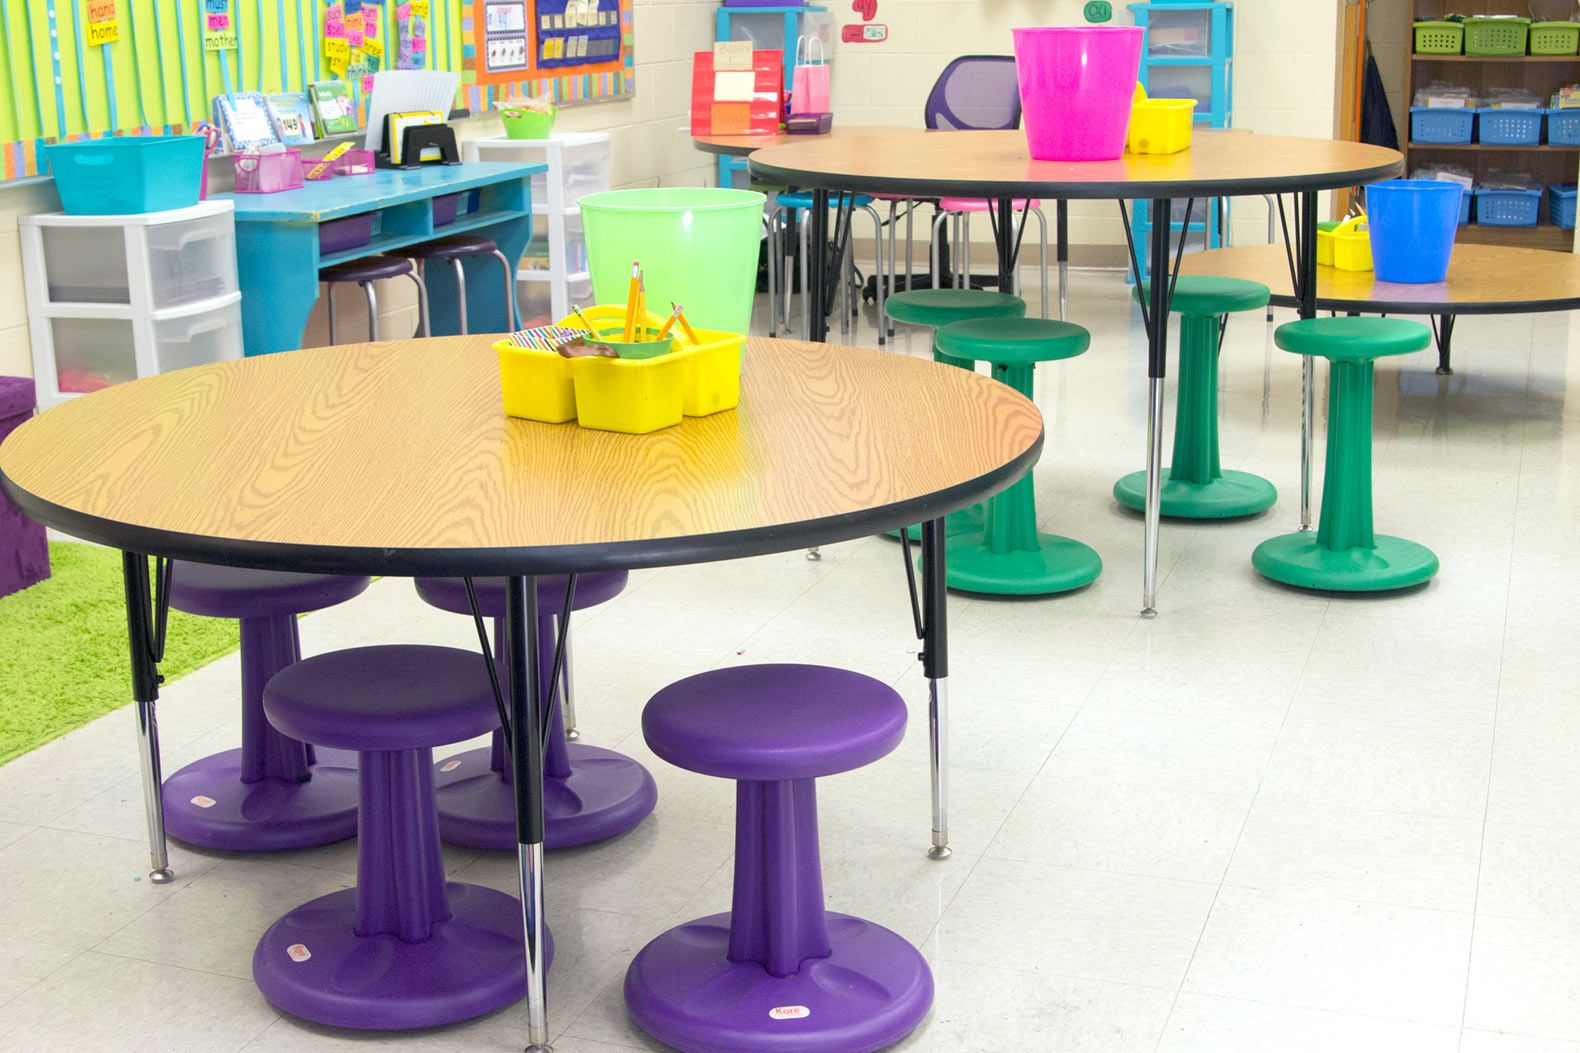 First-grade teacher Ashley Rice Broomfield uses different table heights to cater to her students' preferences.